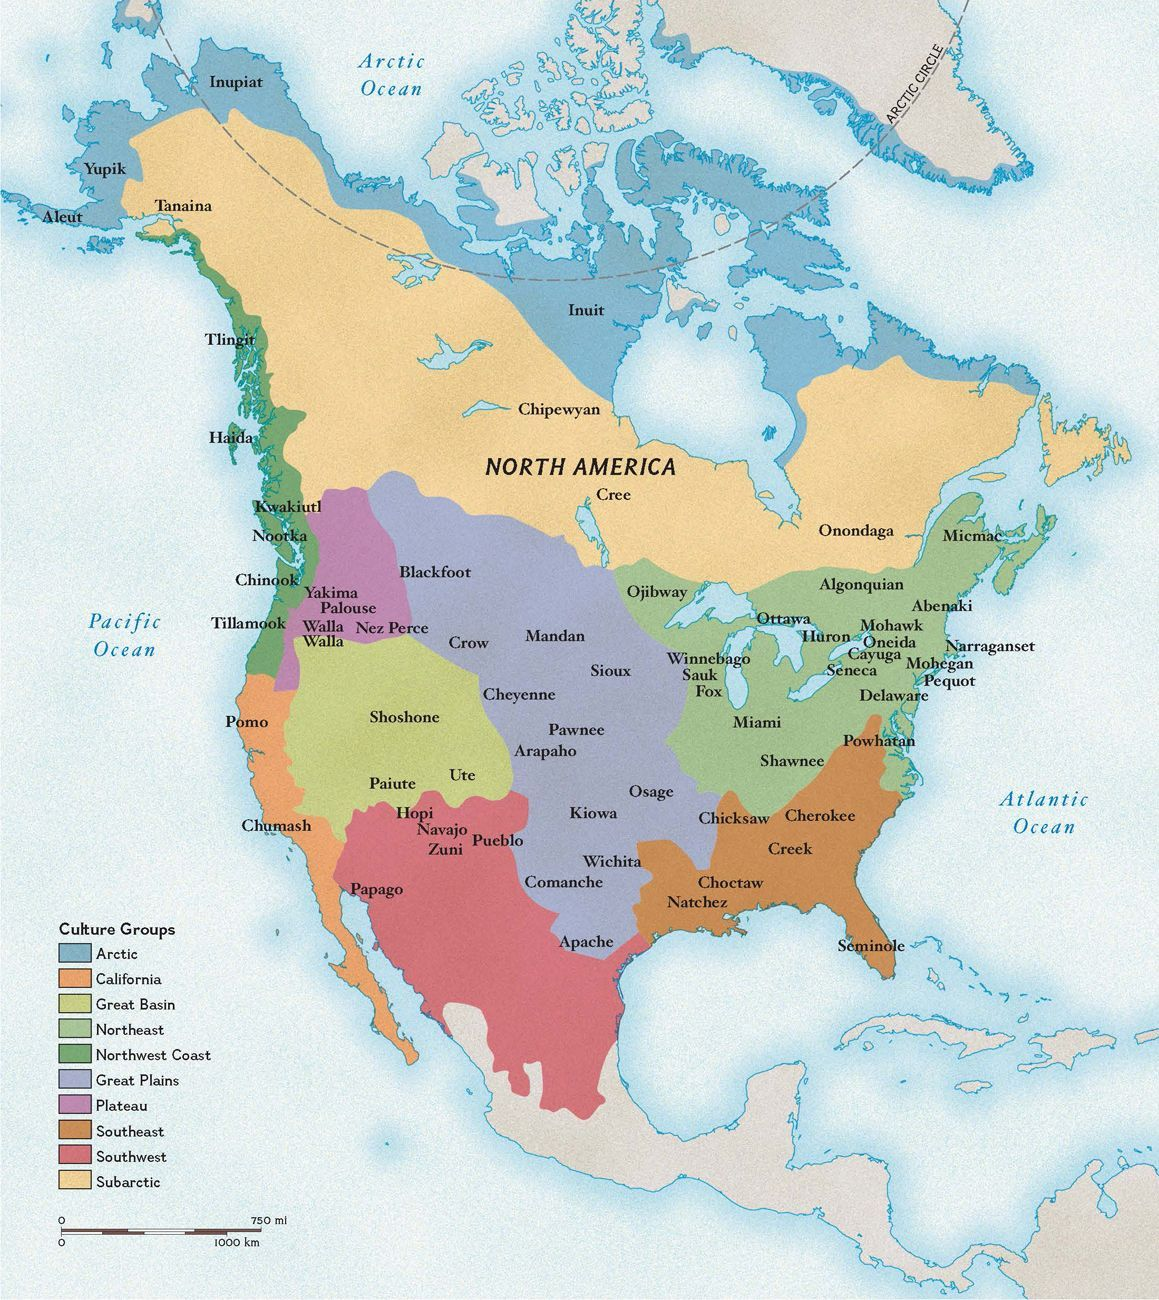 This map show the major Native American cultural regions